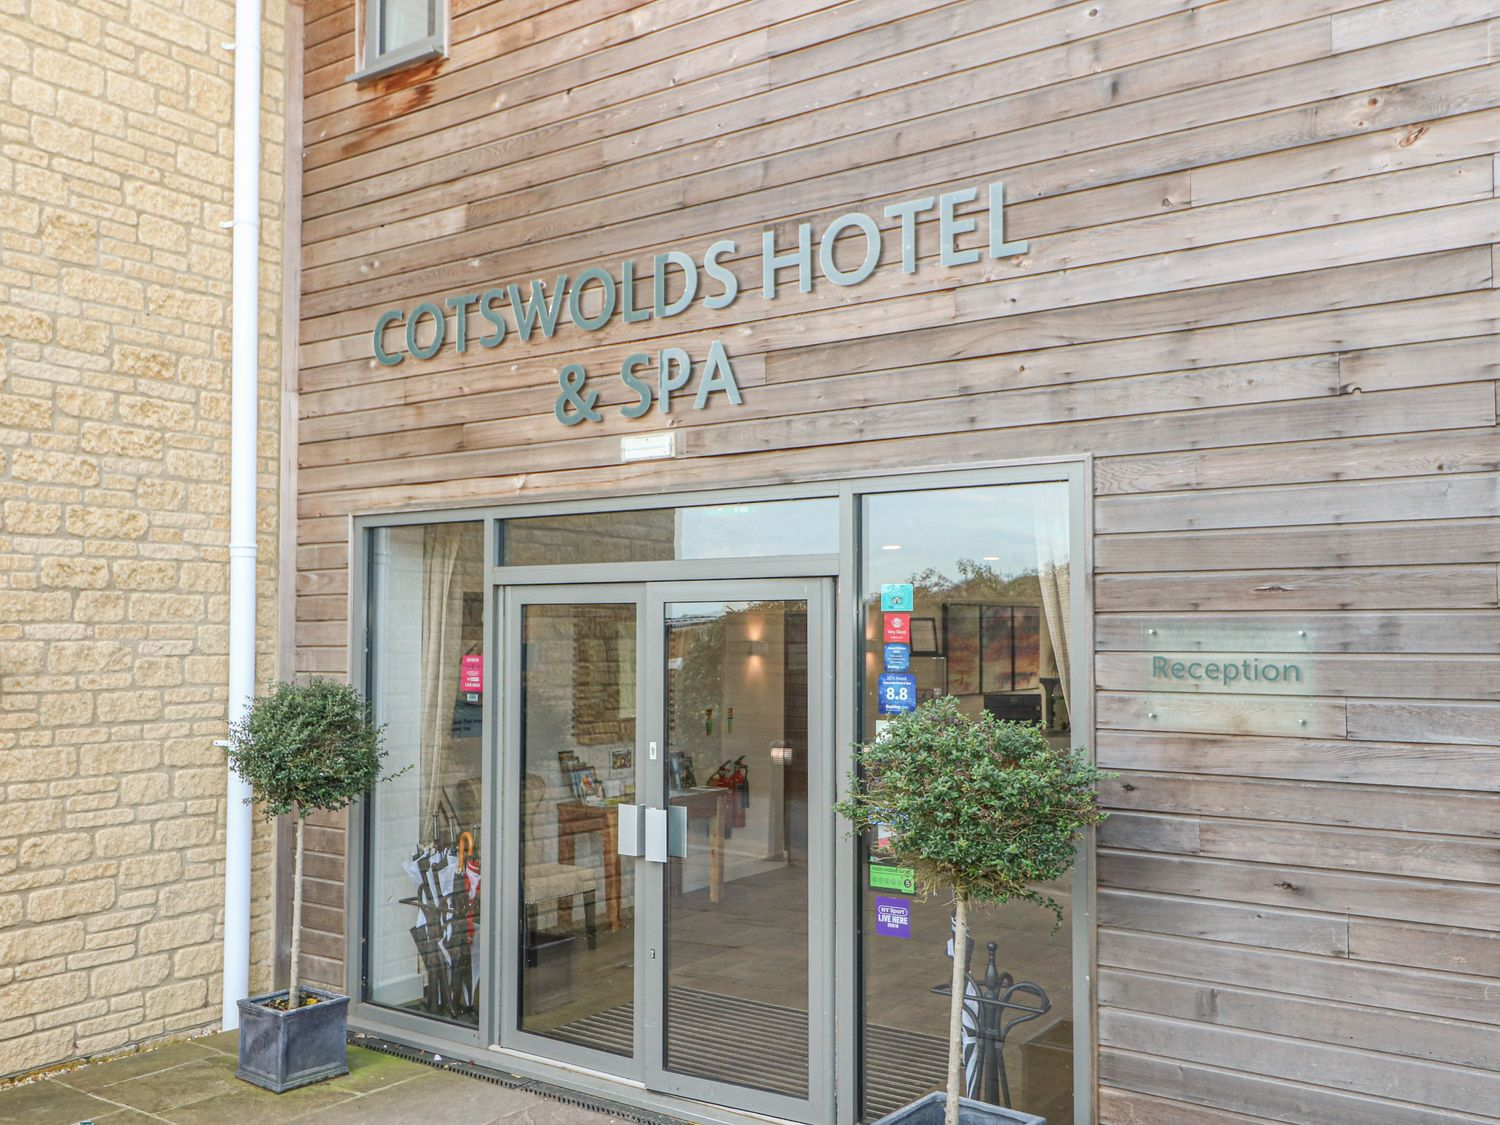 Cotswold Club Apartment (4 Bedroom) - Cotswolds - 1036939 - photo 1